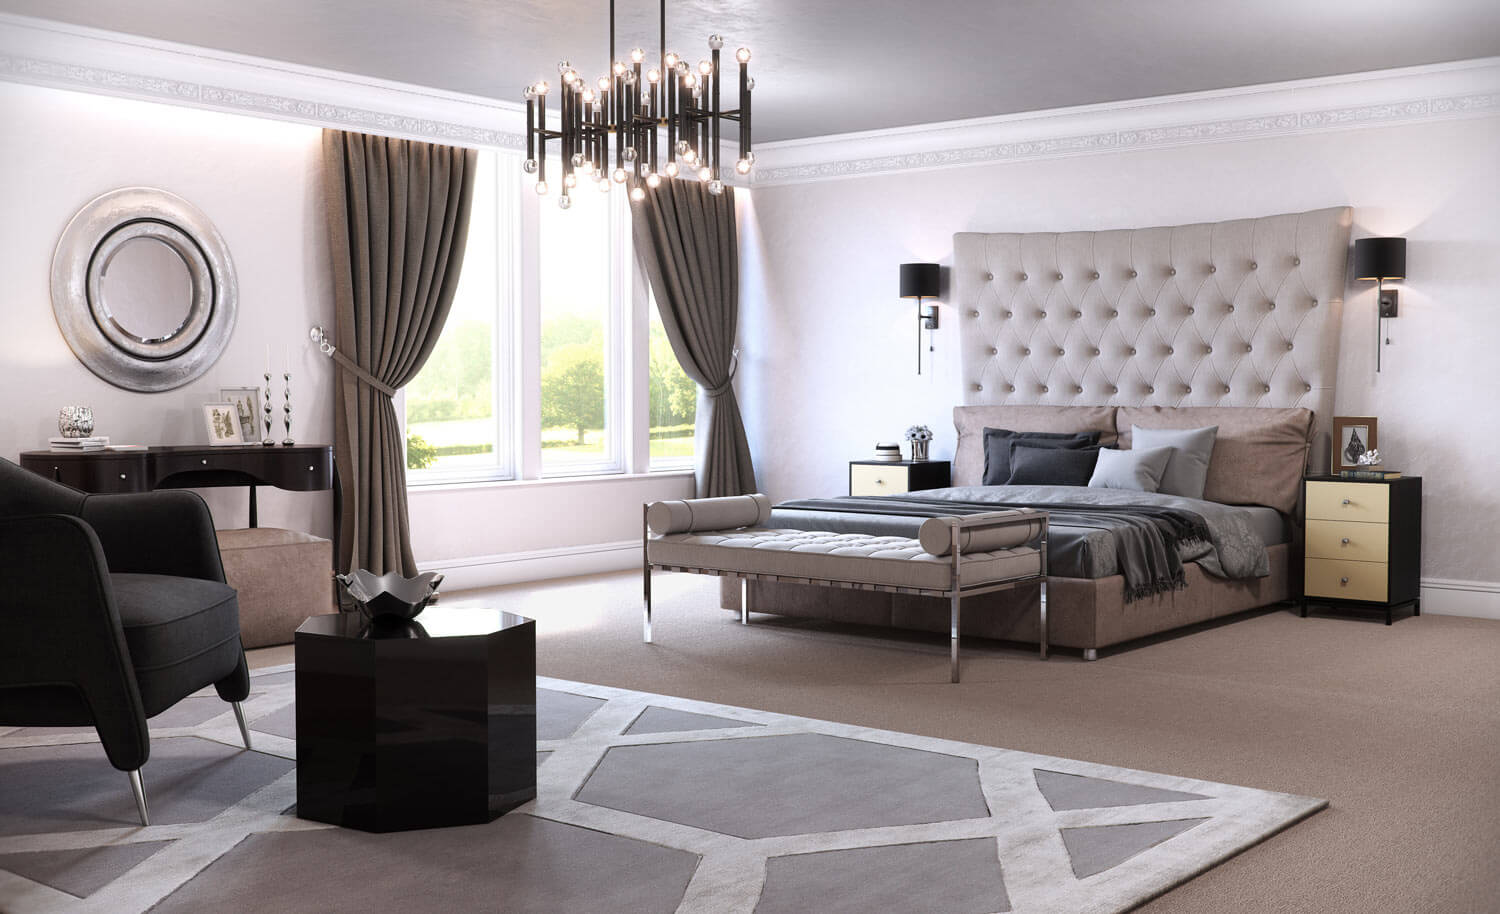 3D computer generated visual of a grand bedroom, with tall feature headboard, luxurious fittings and expensive soft furnishings.